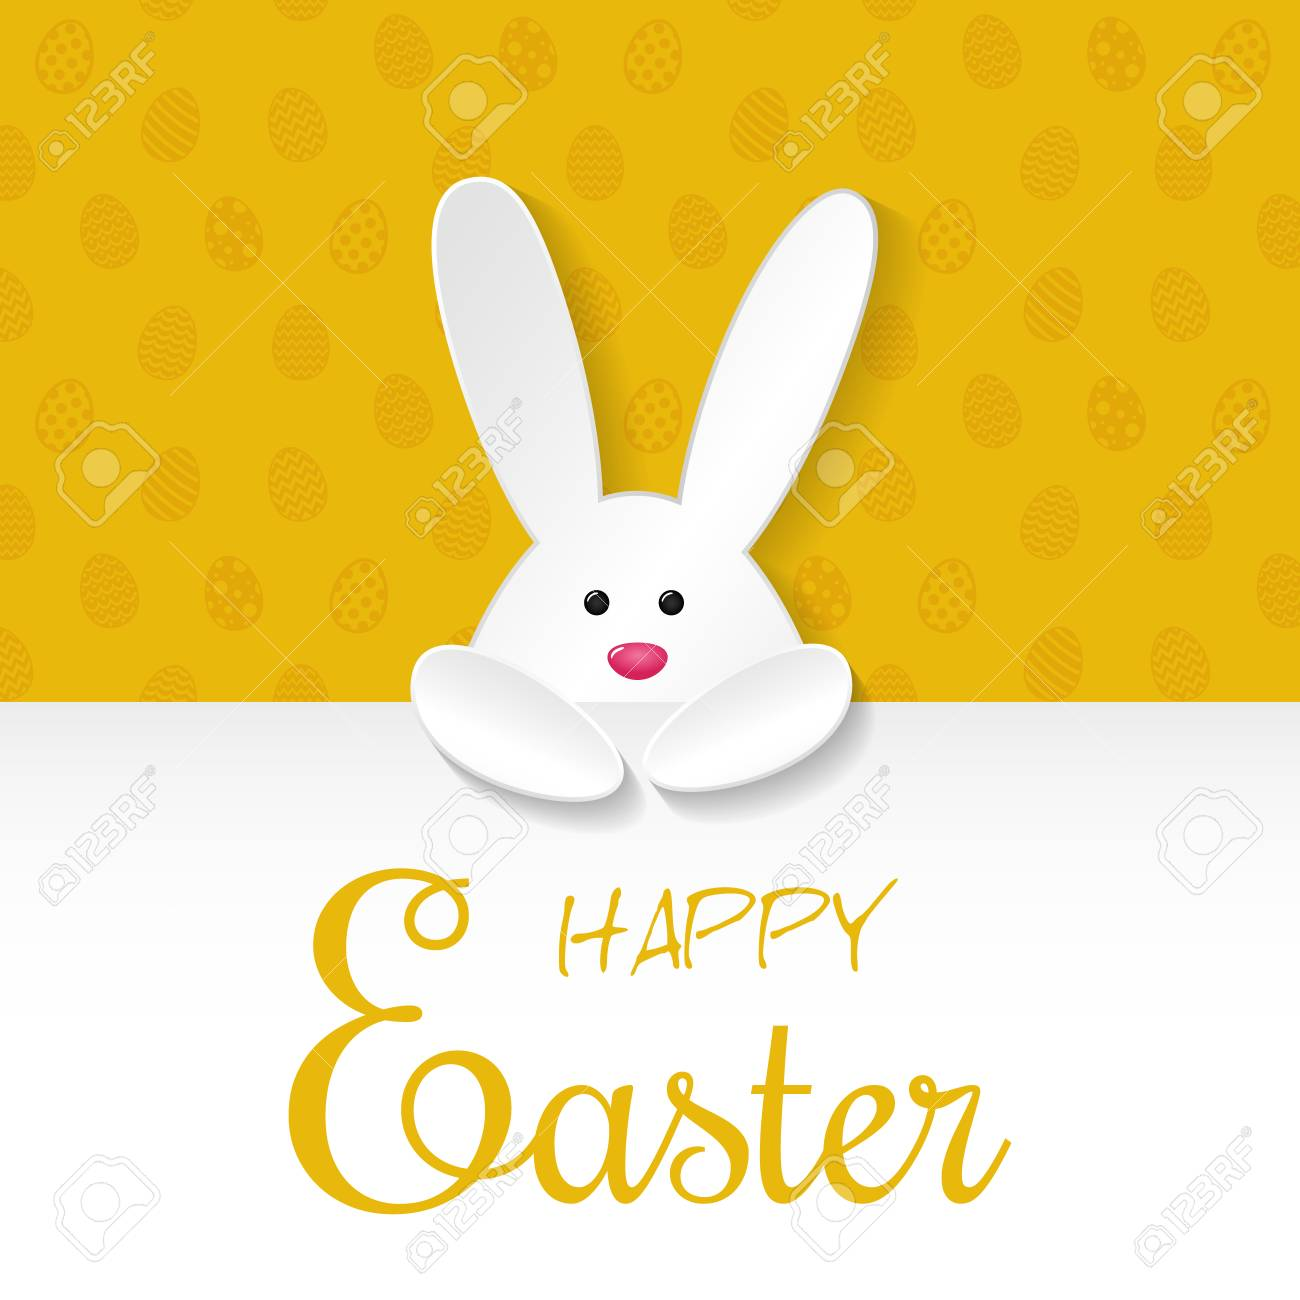 Easter Banner With Paper Cut Bunny And Wishes Vector Illustration Royalty Free Cliparts Vectors And Stock Illustration Image 96826614